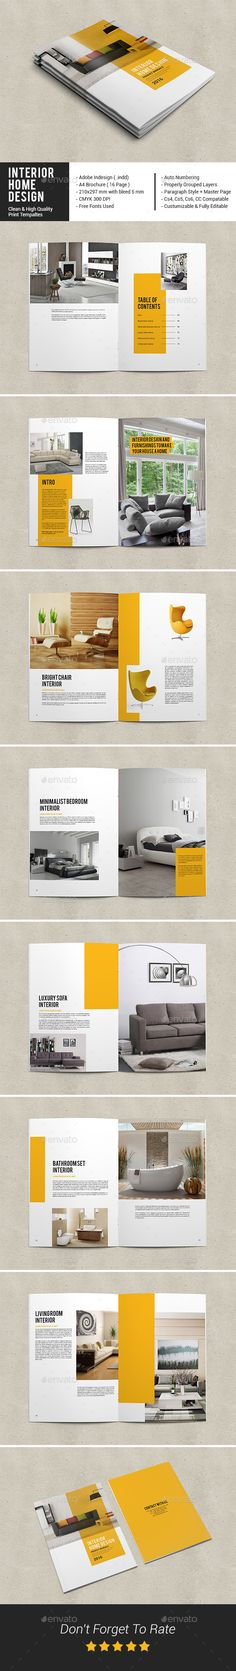 Interior Home Design Catalog Template InDesign INDD. Download here: http://graphicriver.net/item/interior-home-design-catalog/16077754?ref=ksioks